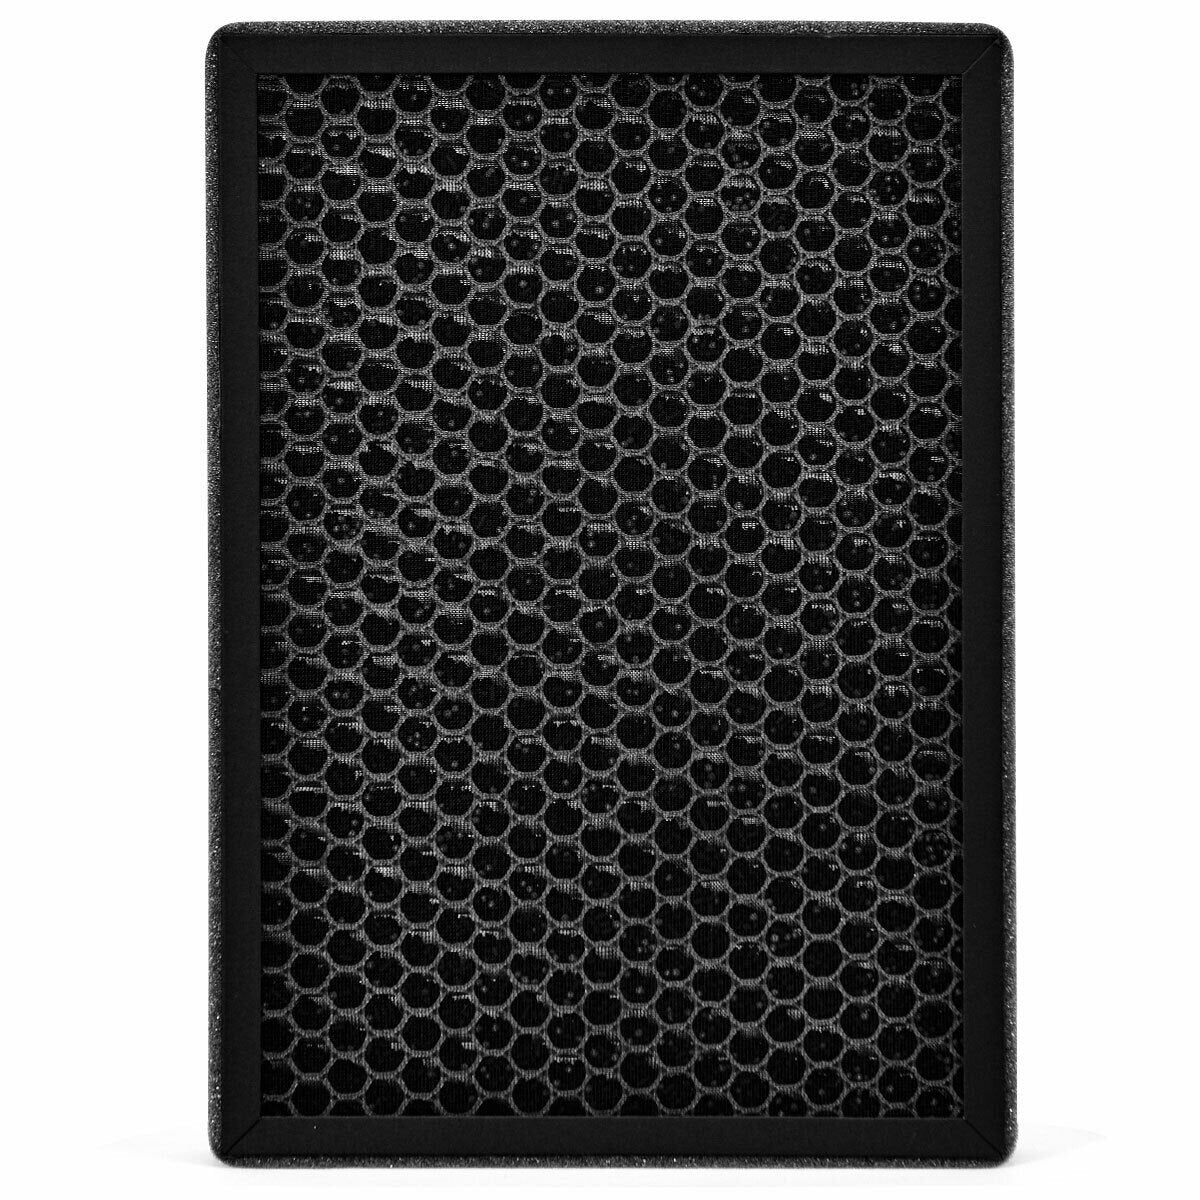 4-in-1 Air Purifier Replacement Composite Filter with HEPA Activated Carbon Filter